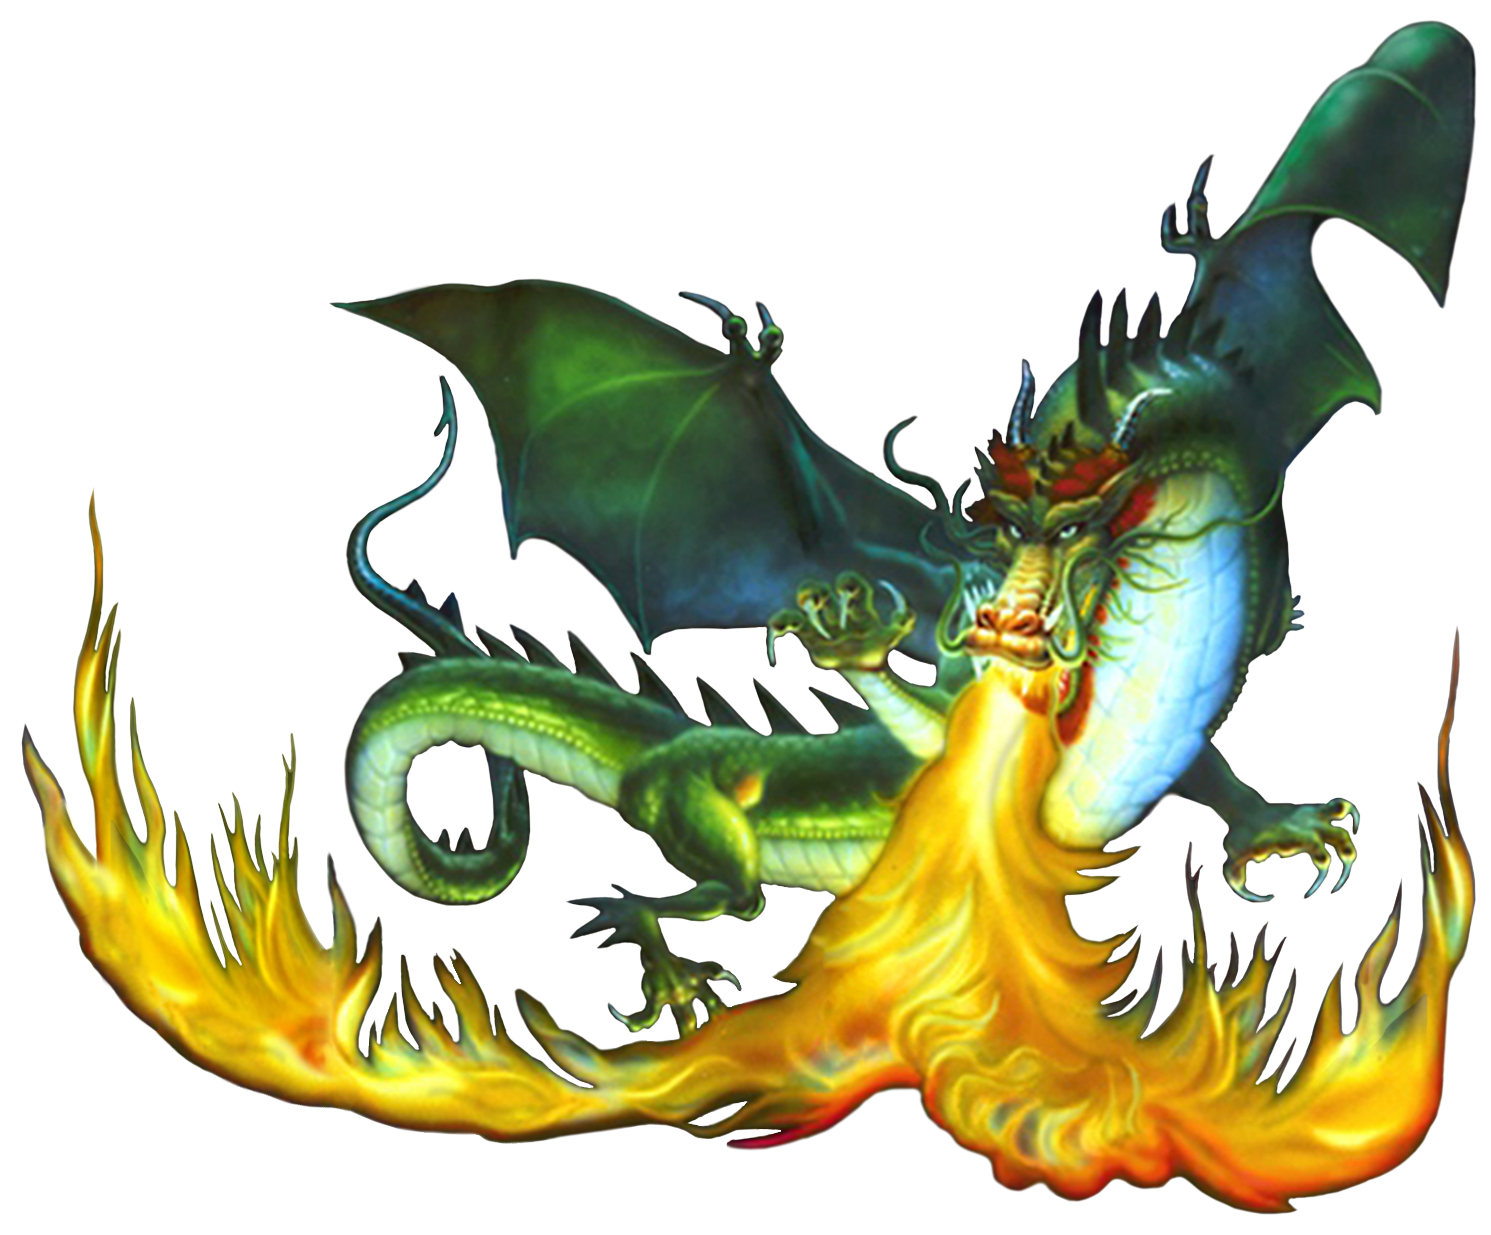 Firebreathing Dragon #1380502 - Fire Breathing Dragon PNG HD